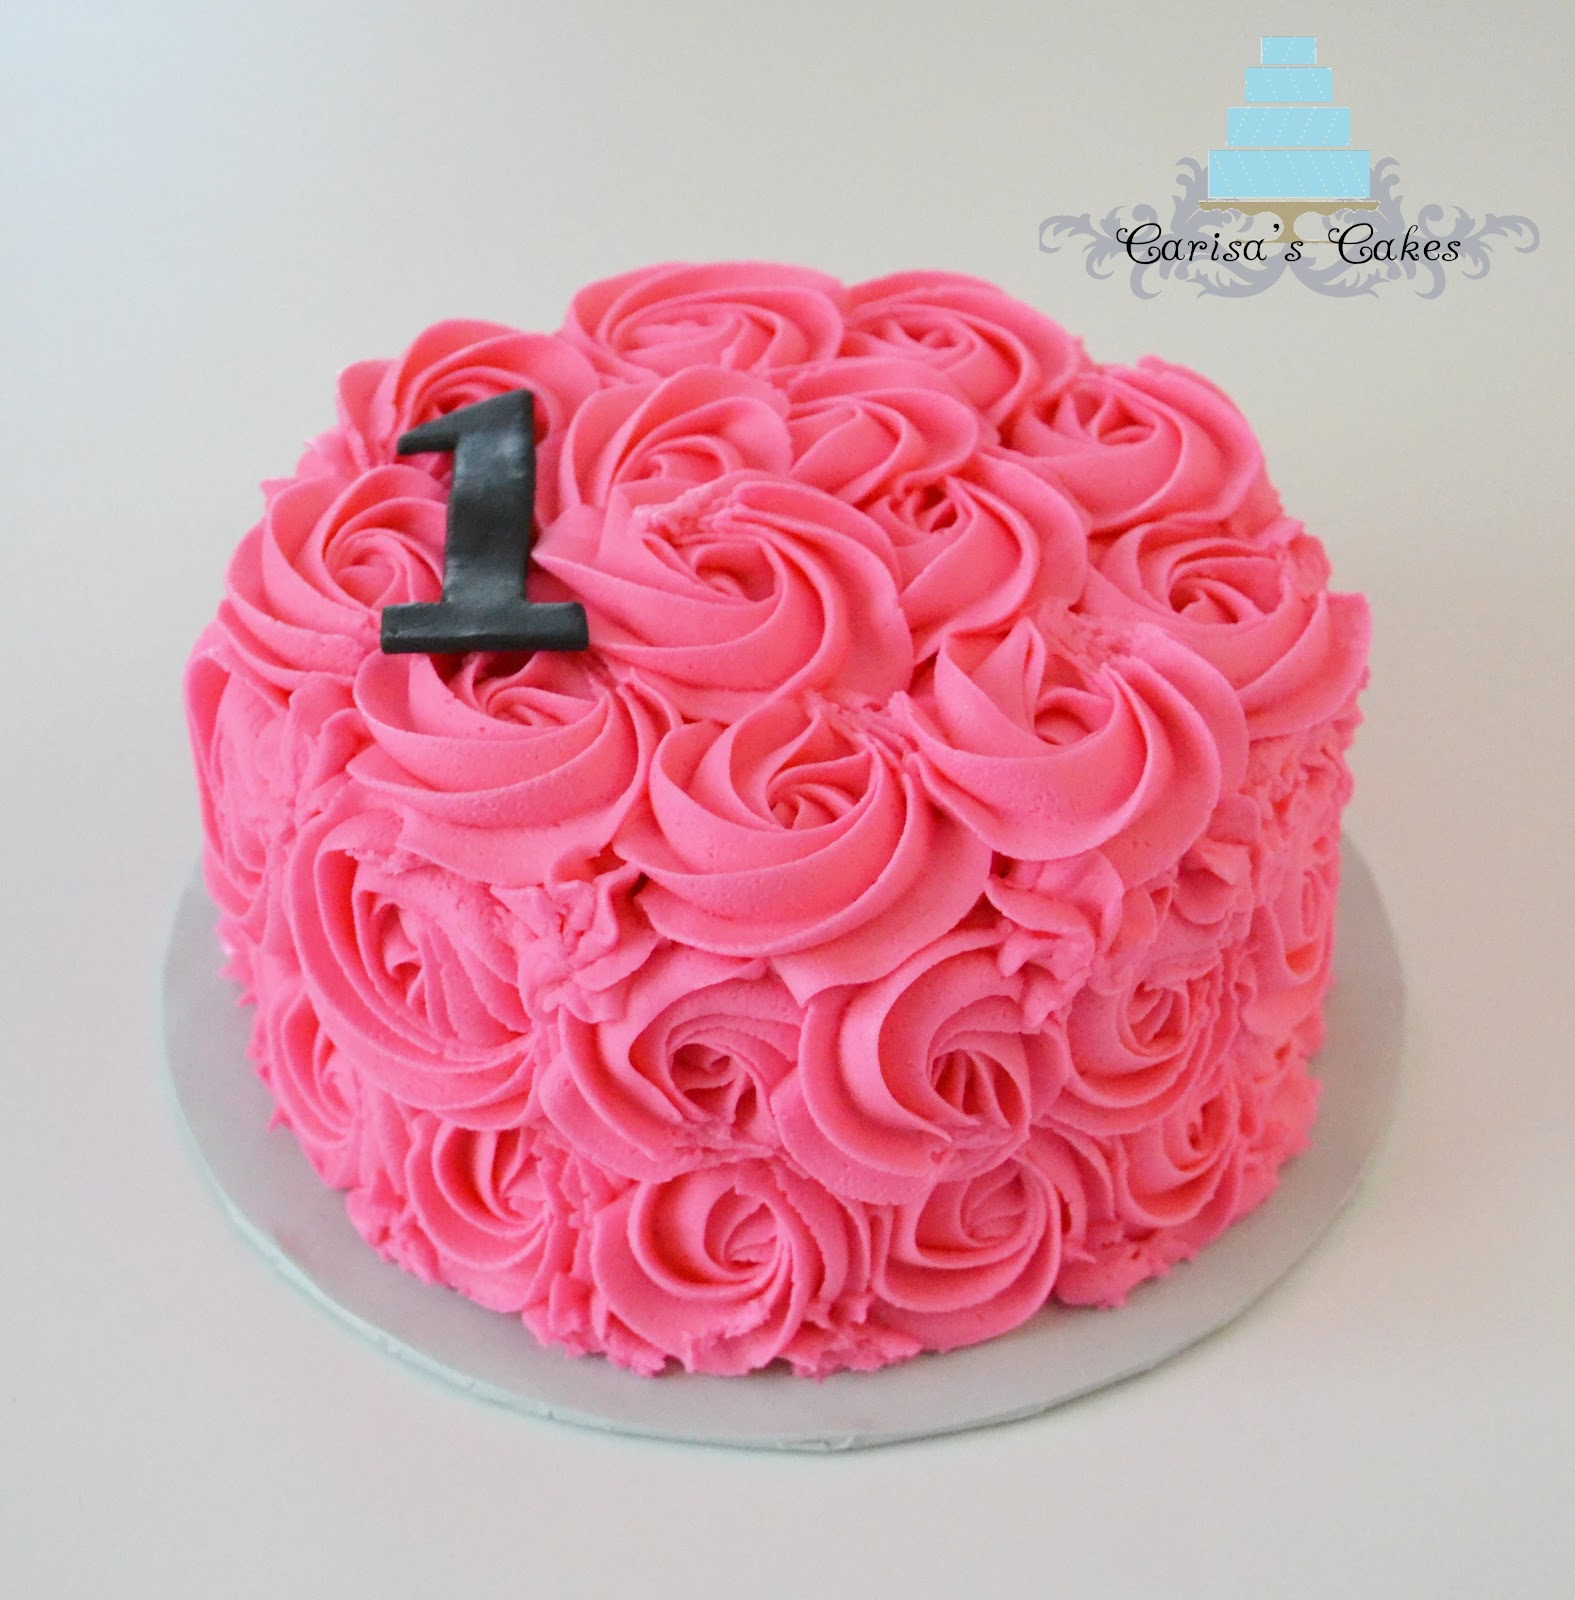 Cake Images Rose : Carisa s Cakes: Rose swirl smash cake